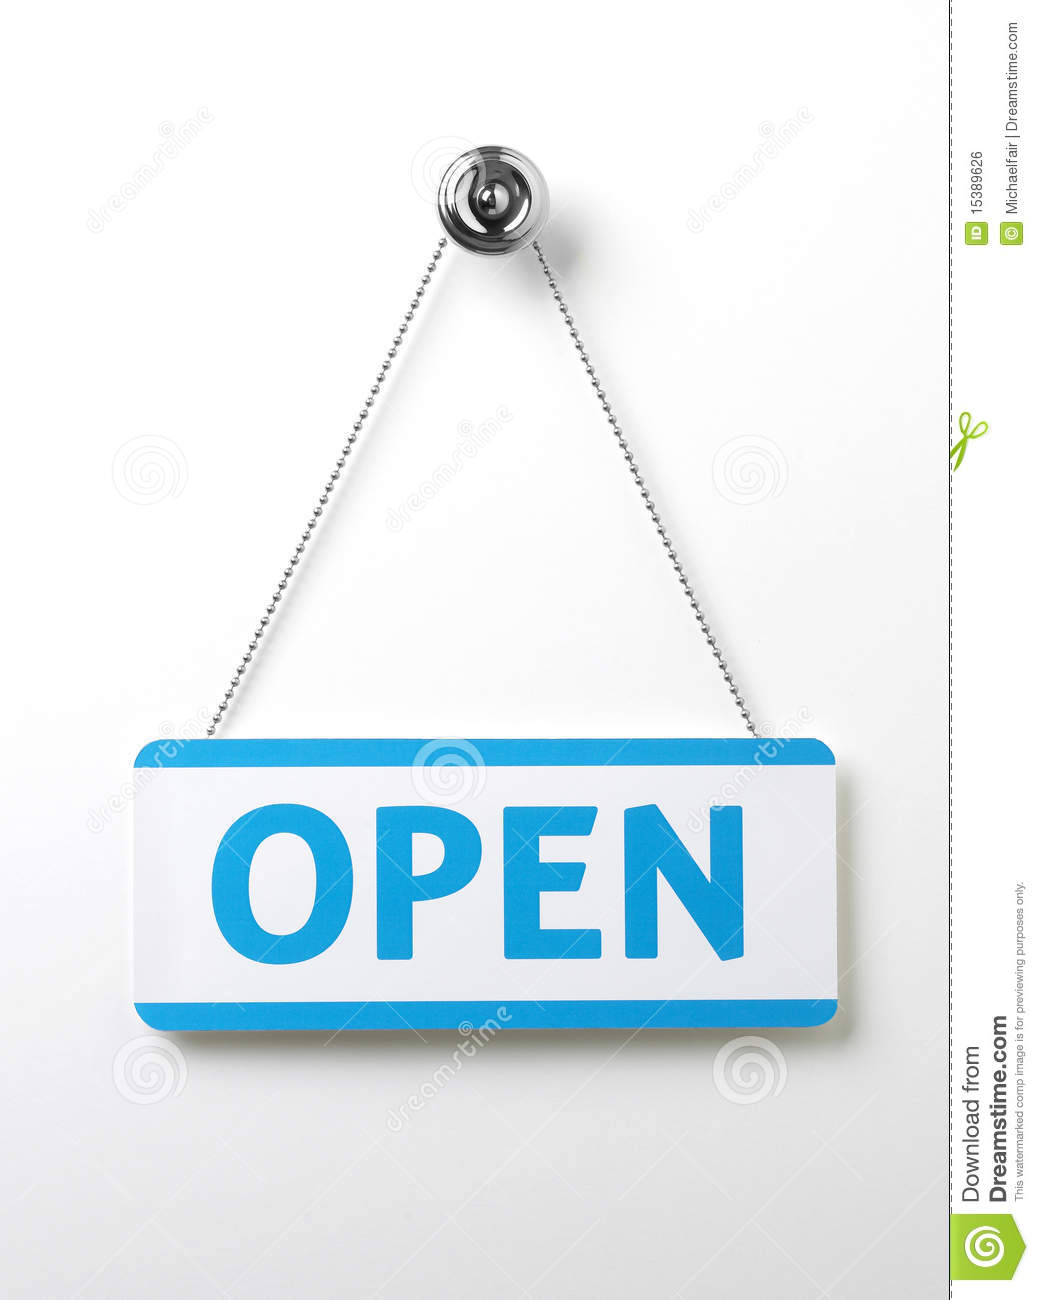 Process blue open door sign on a silver chain on a